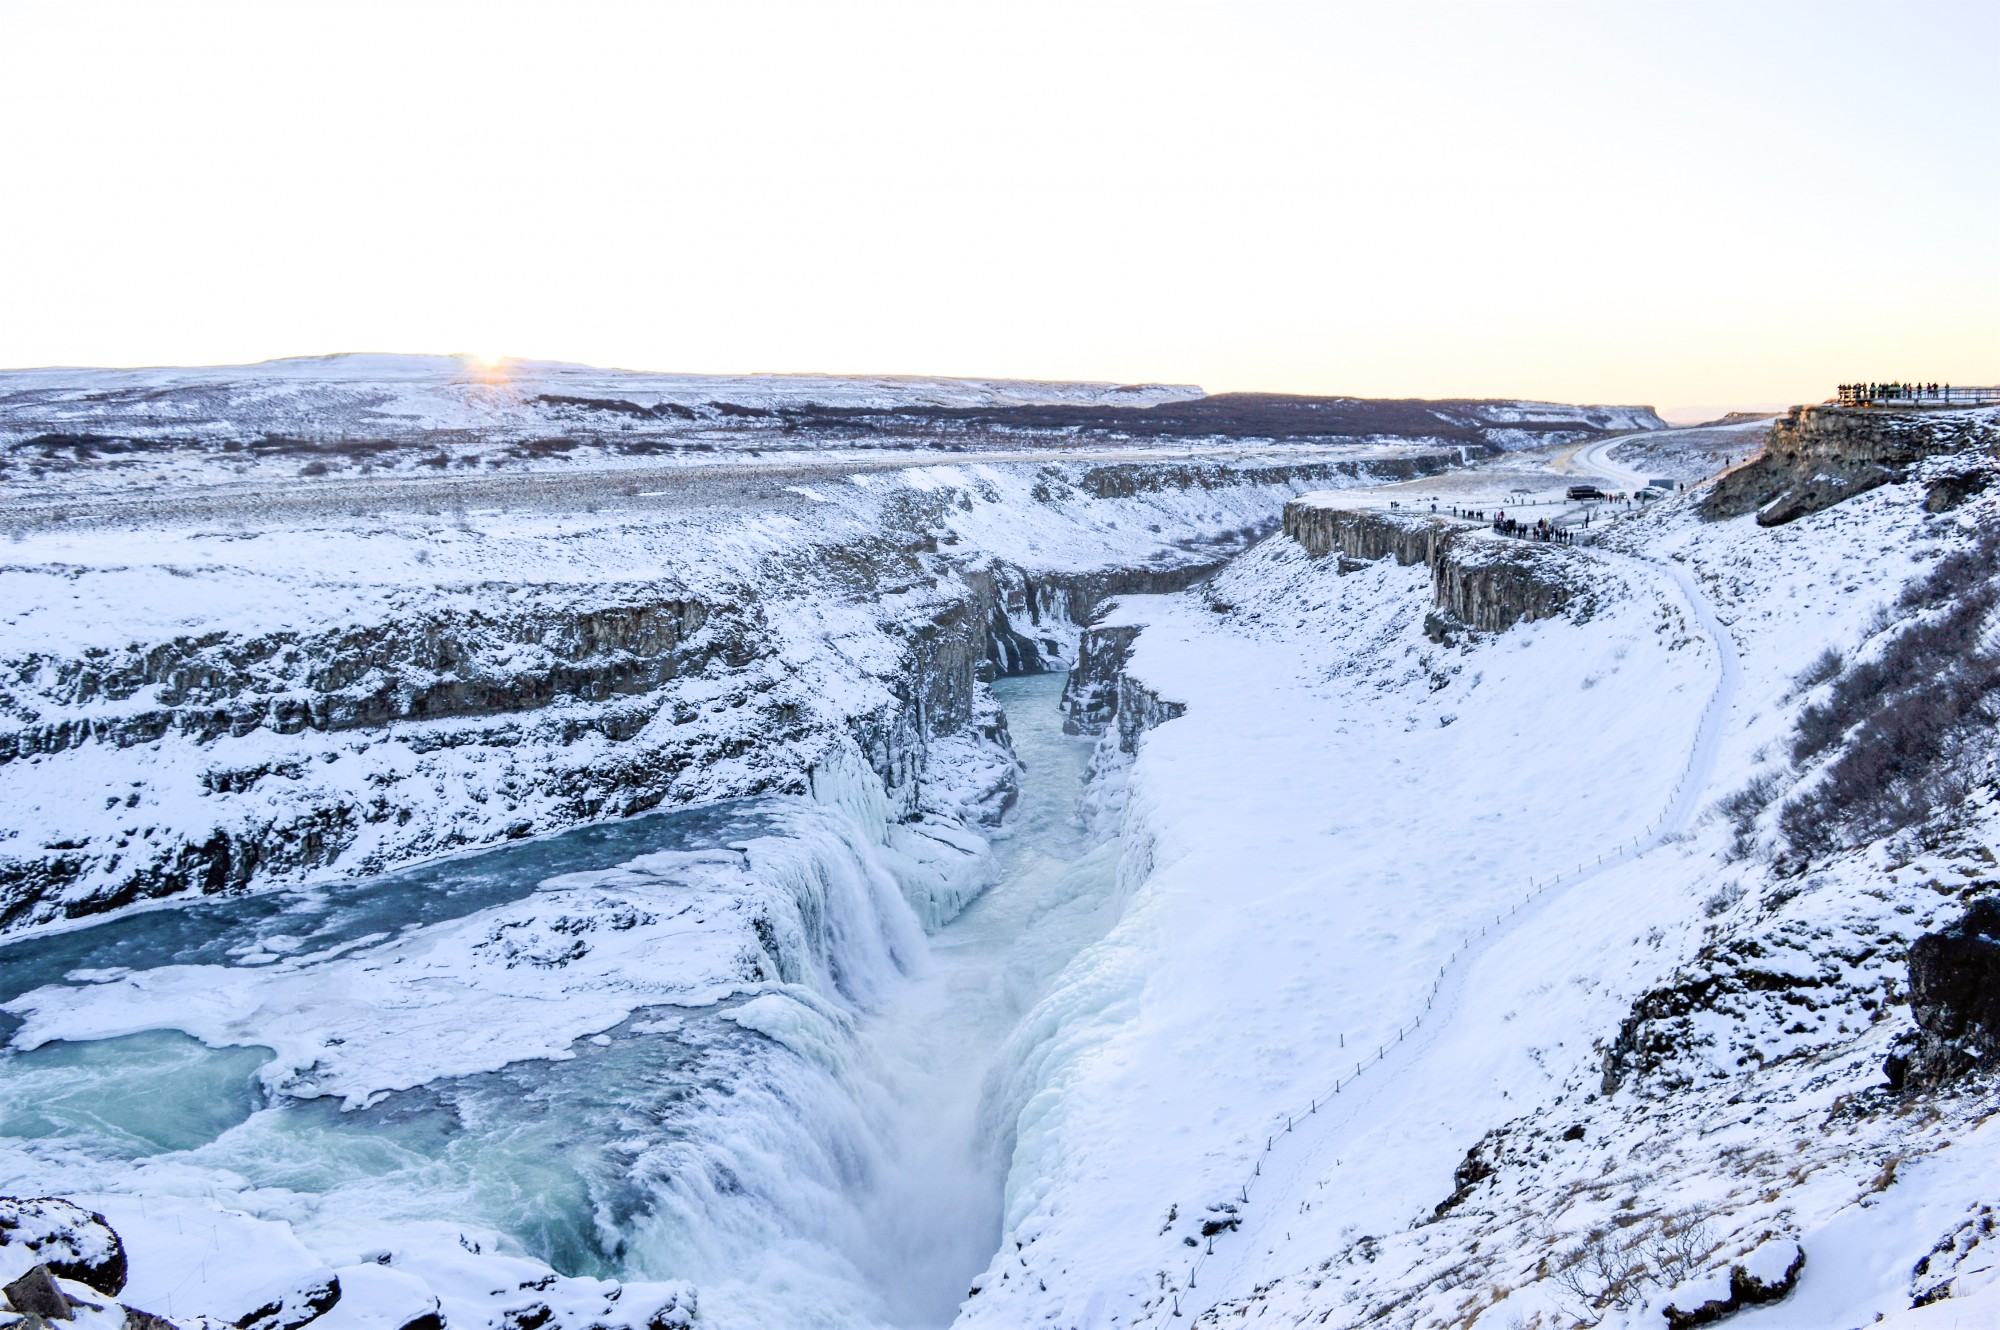 Lower Falls At The Gullfoss Waterfall in Iceland